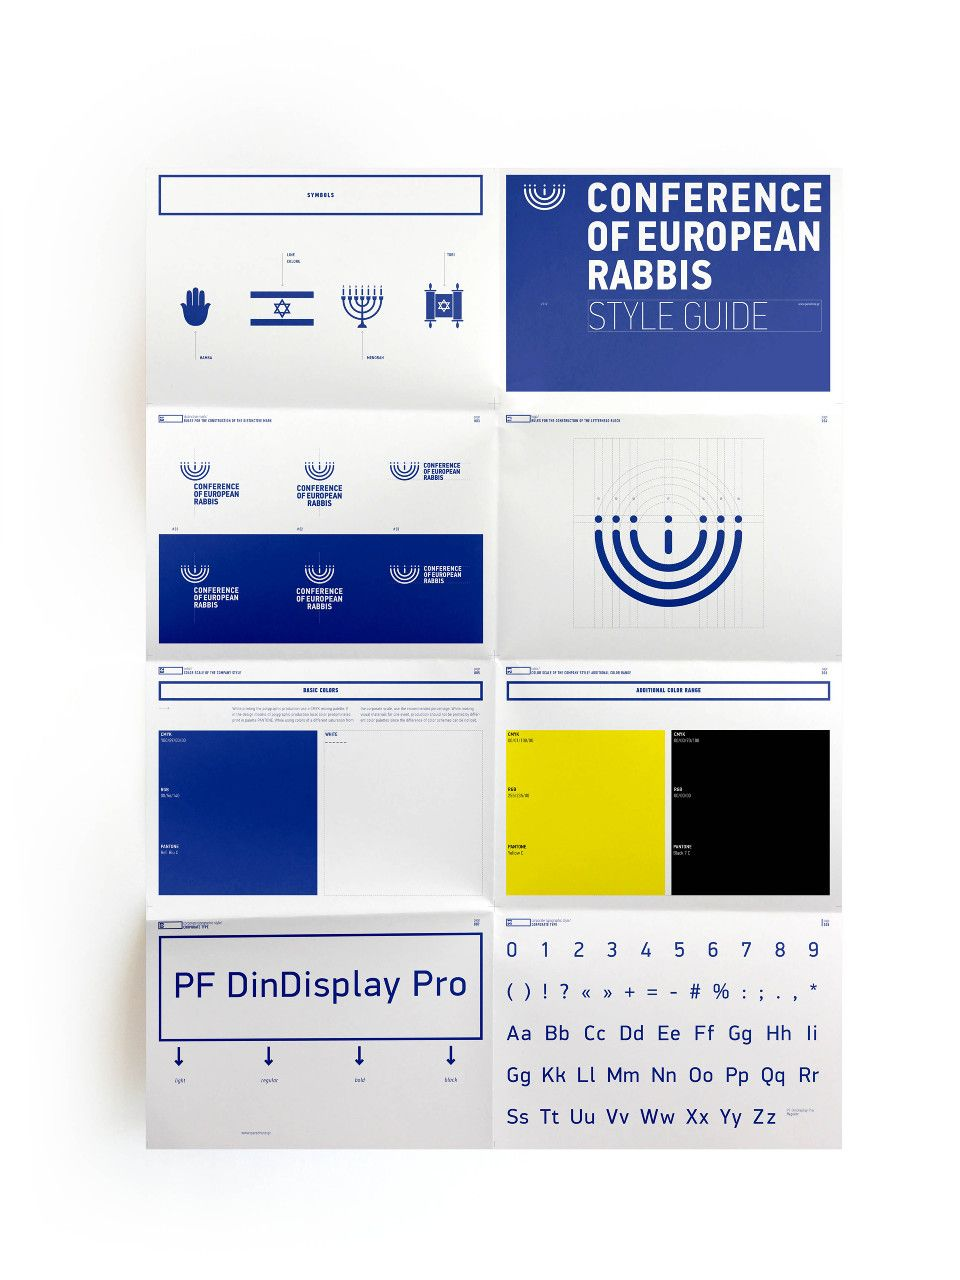 Conference Of European Rabbis Brand Guidelines Graphic Design